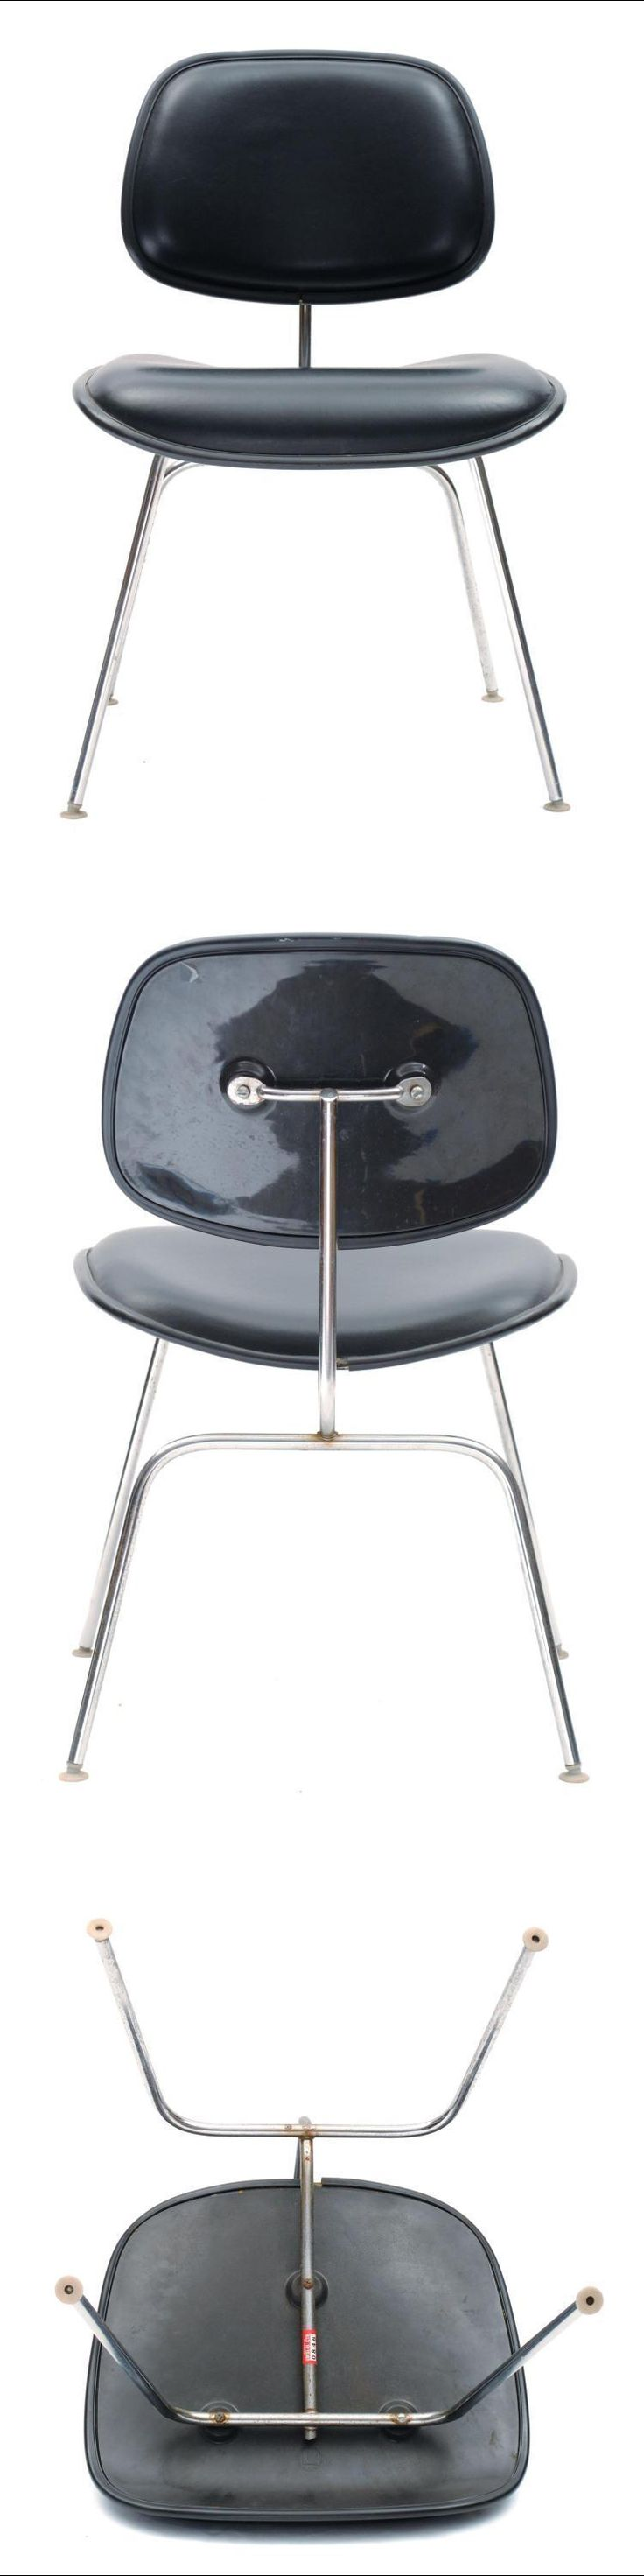 Vintage #Eames Two Piece Molded Plastic Chair from the 1970s @hermanmiller Learn more about Charles and Ray on our website